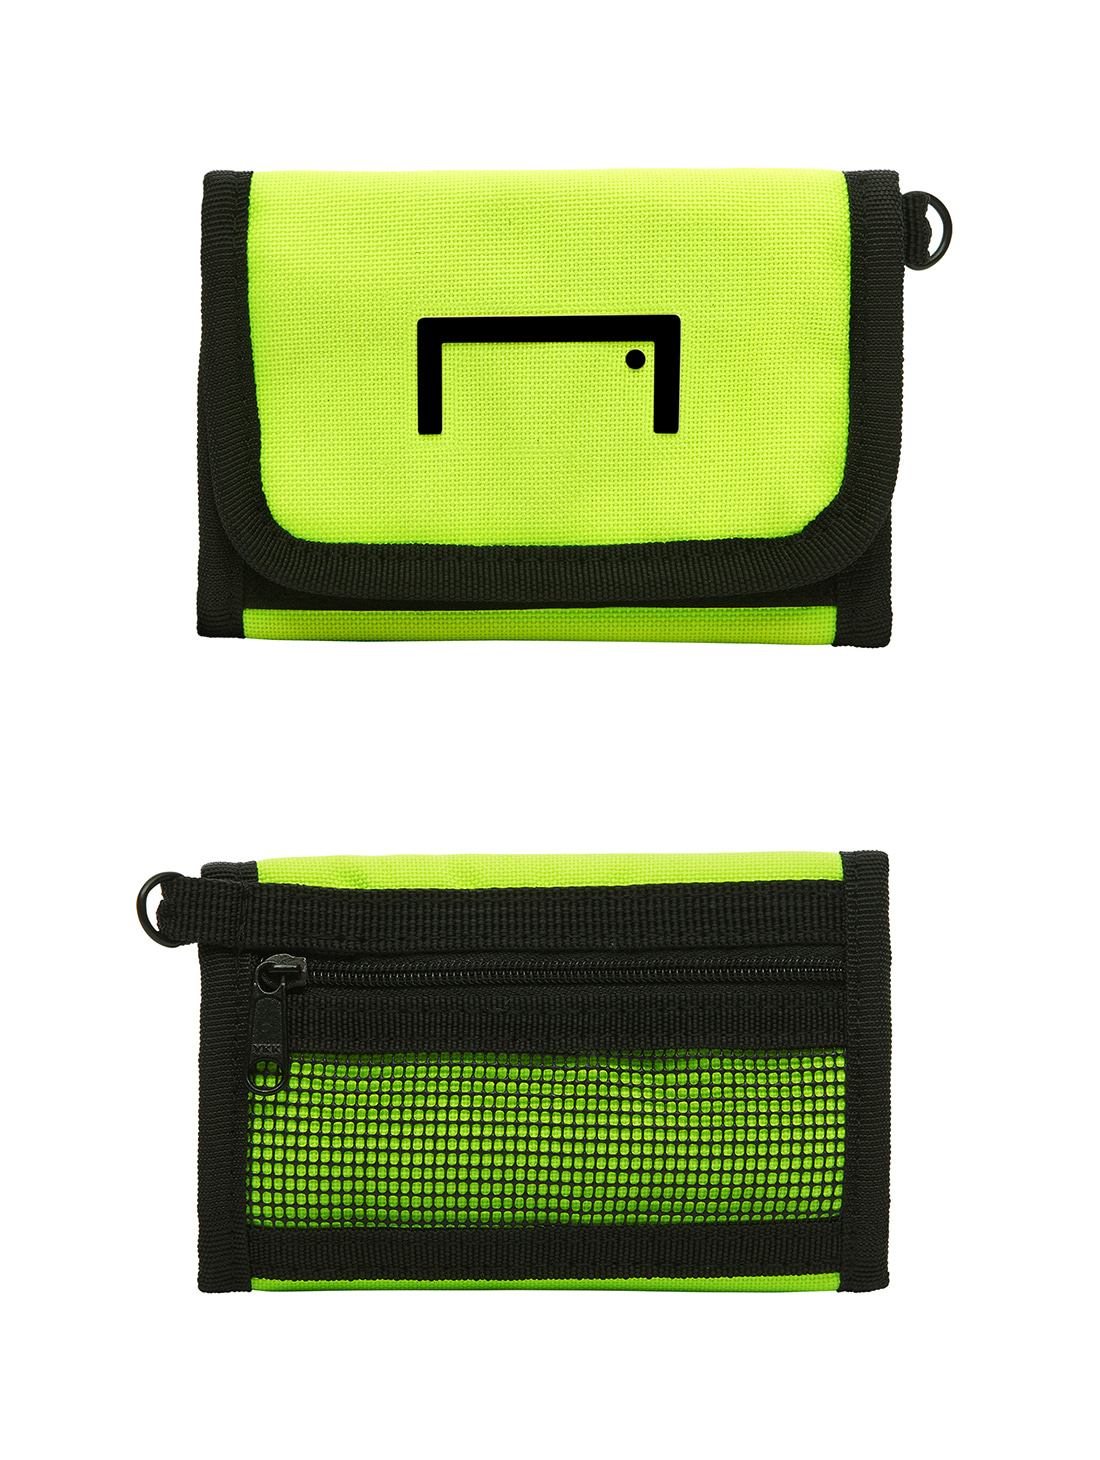 GOALSTUDIO VELCRO WALLET - LIME